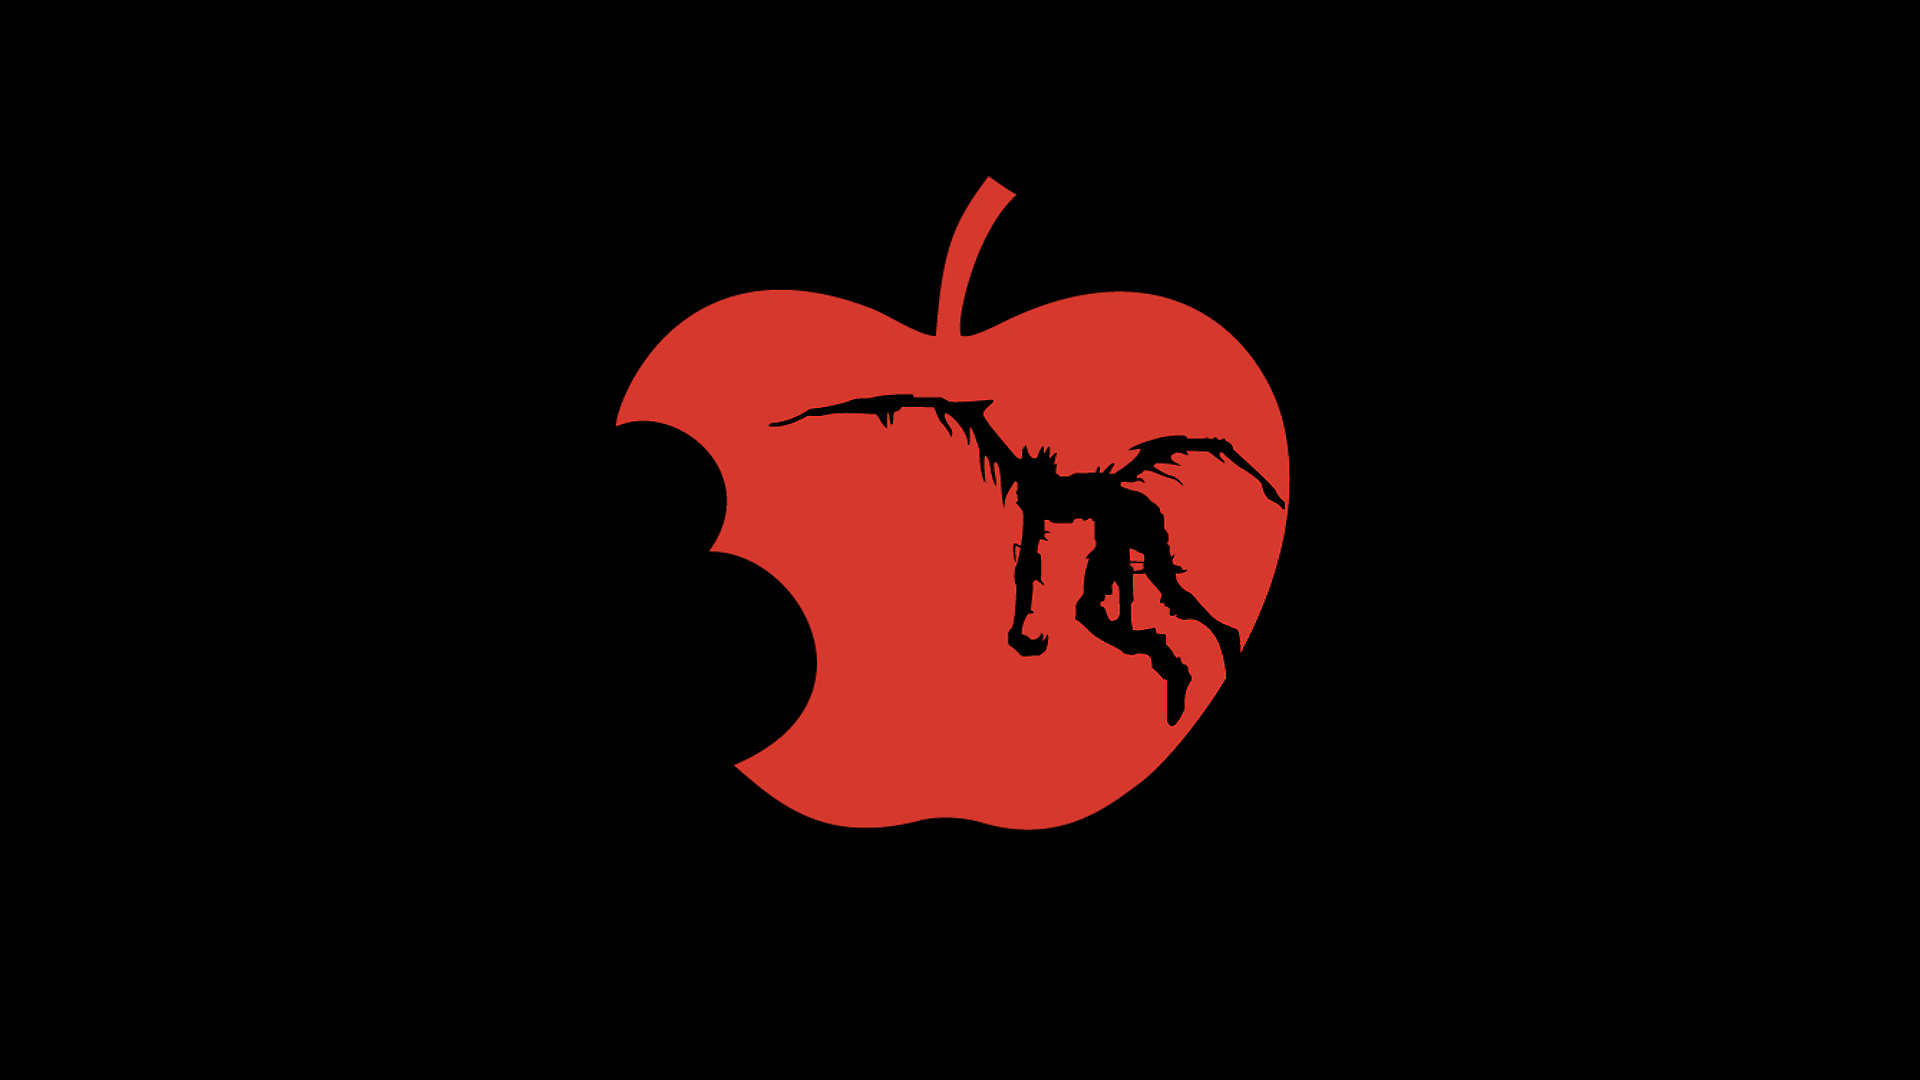 death note wallpaper,red,logo,fruit,plant,graphics